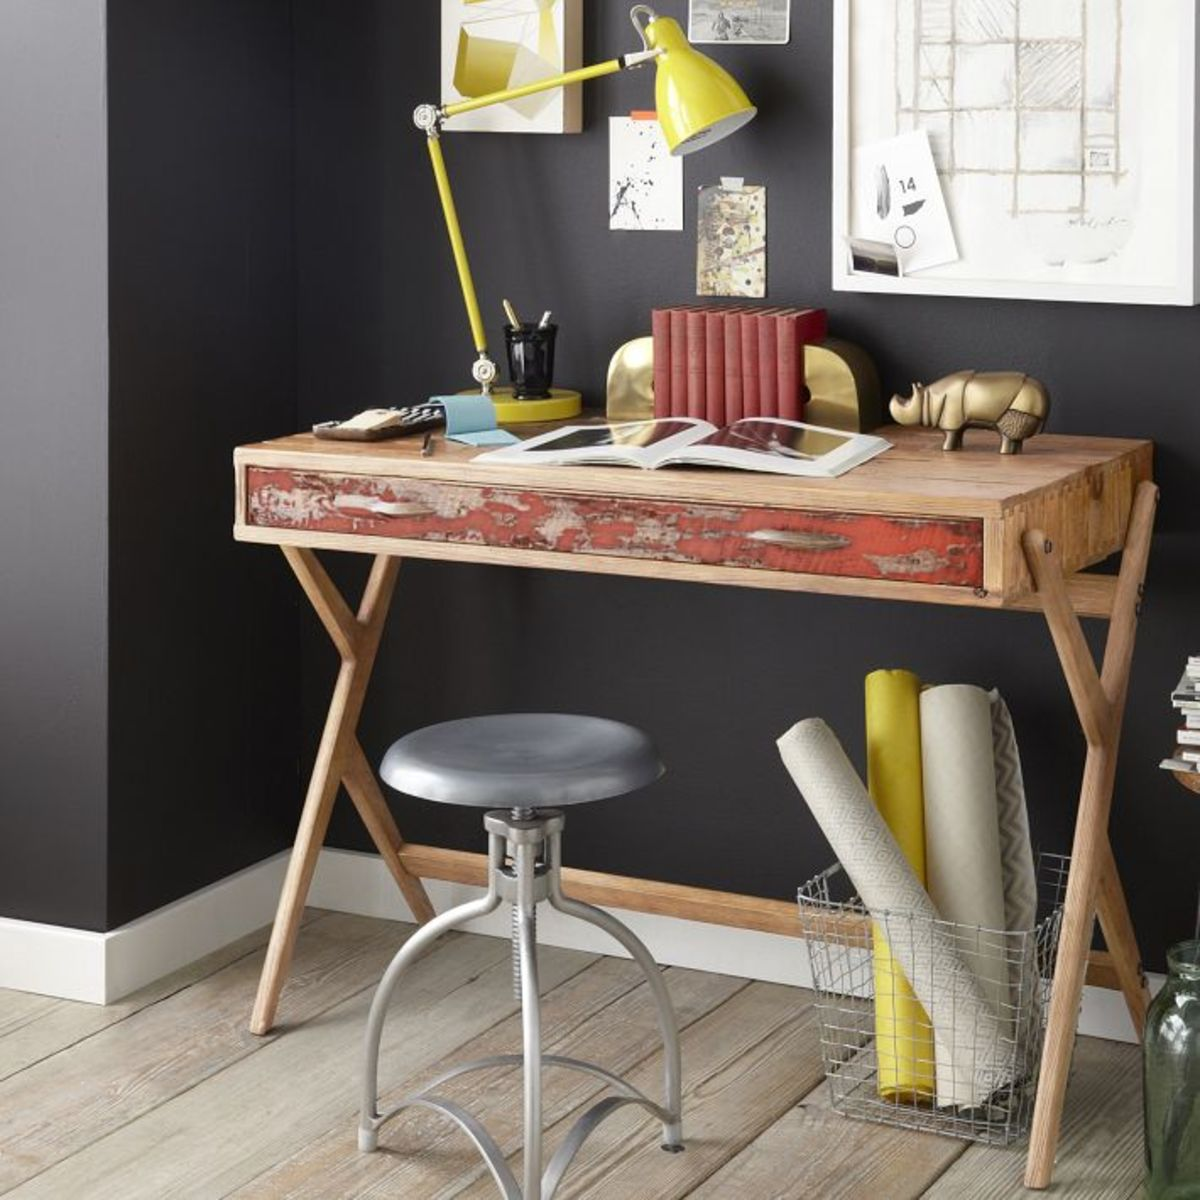 Reclaimed Pine Cross Base Desk: If your place has a rustic and industrial  look, this one made from reclaimed pine is a solid option.